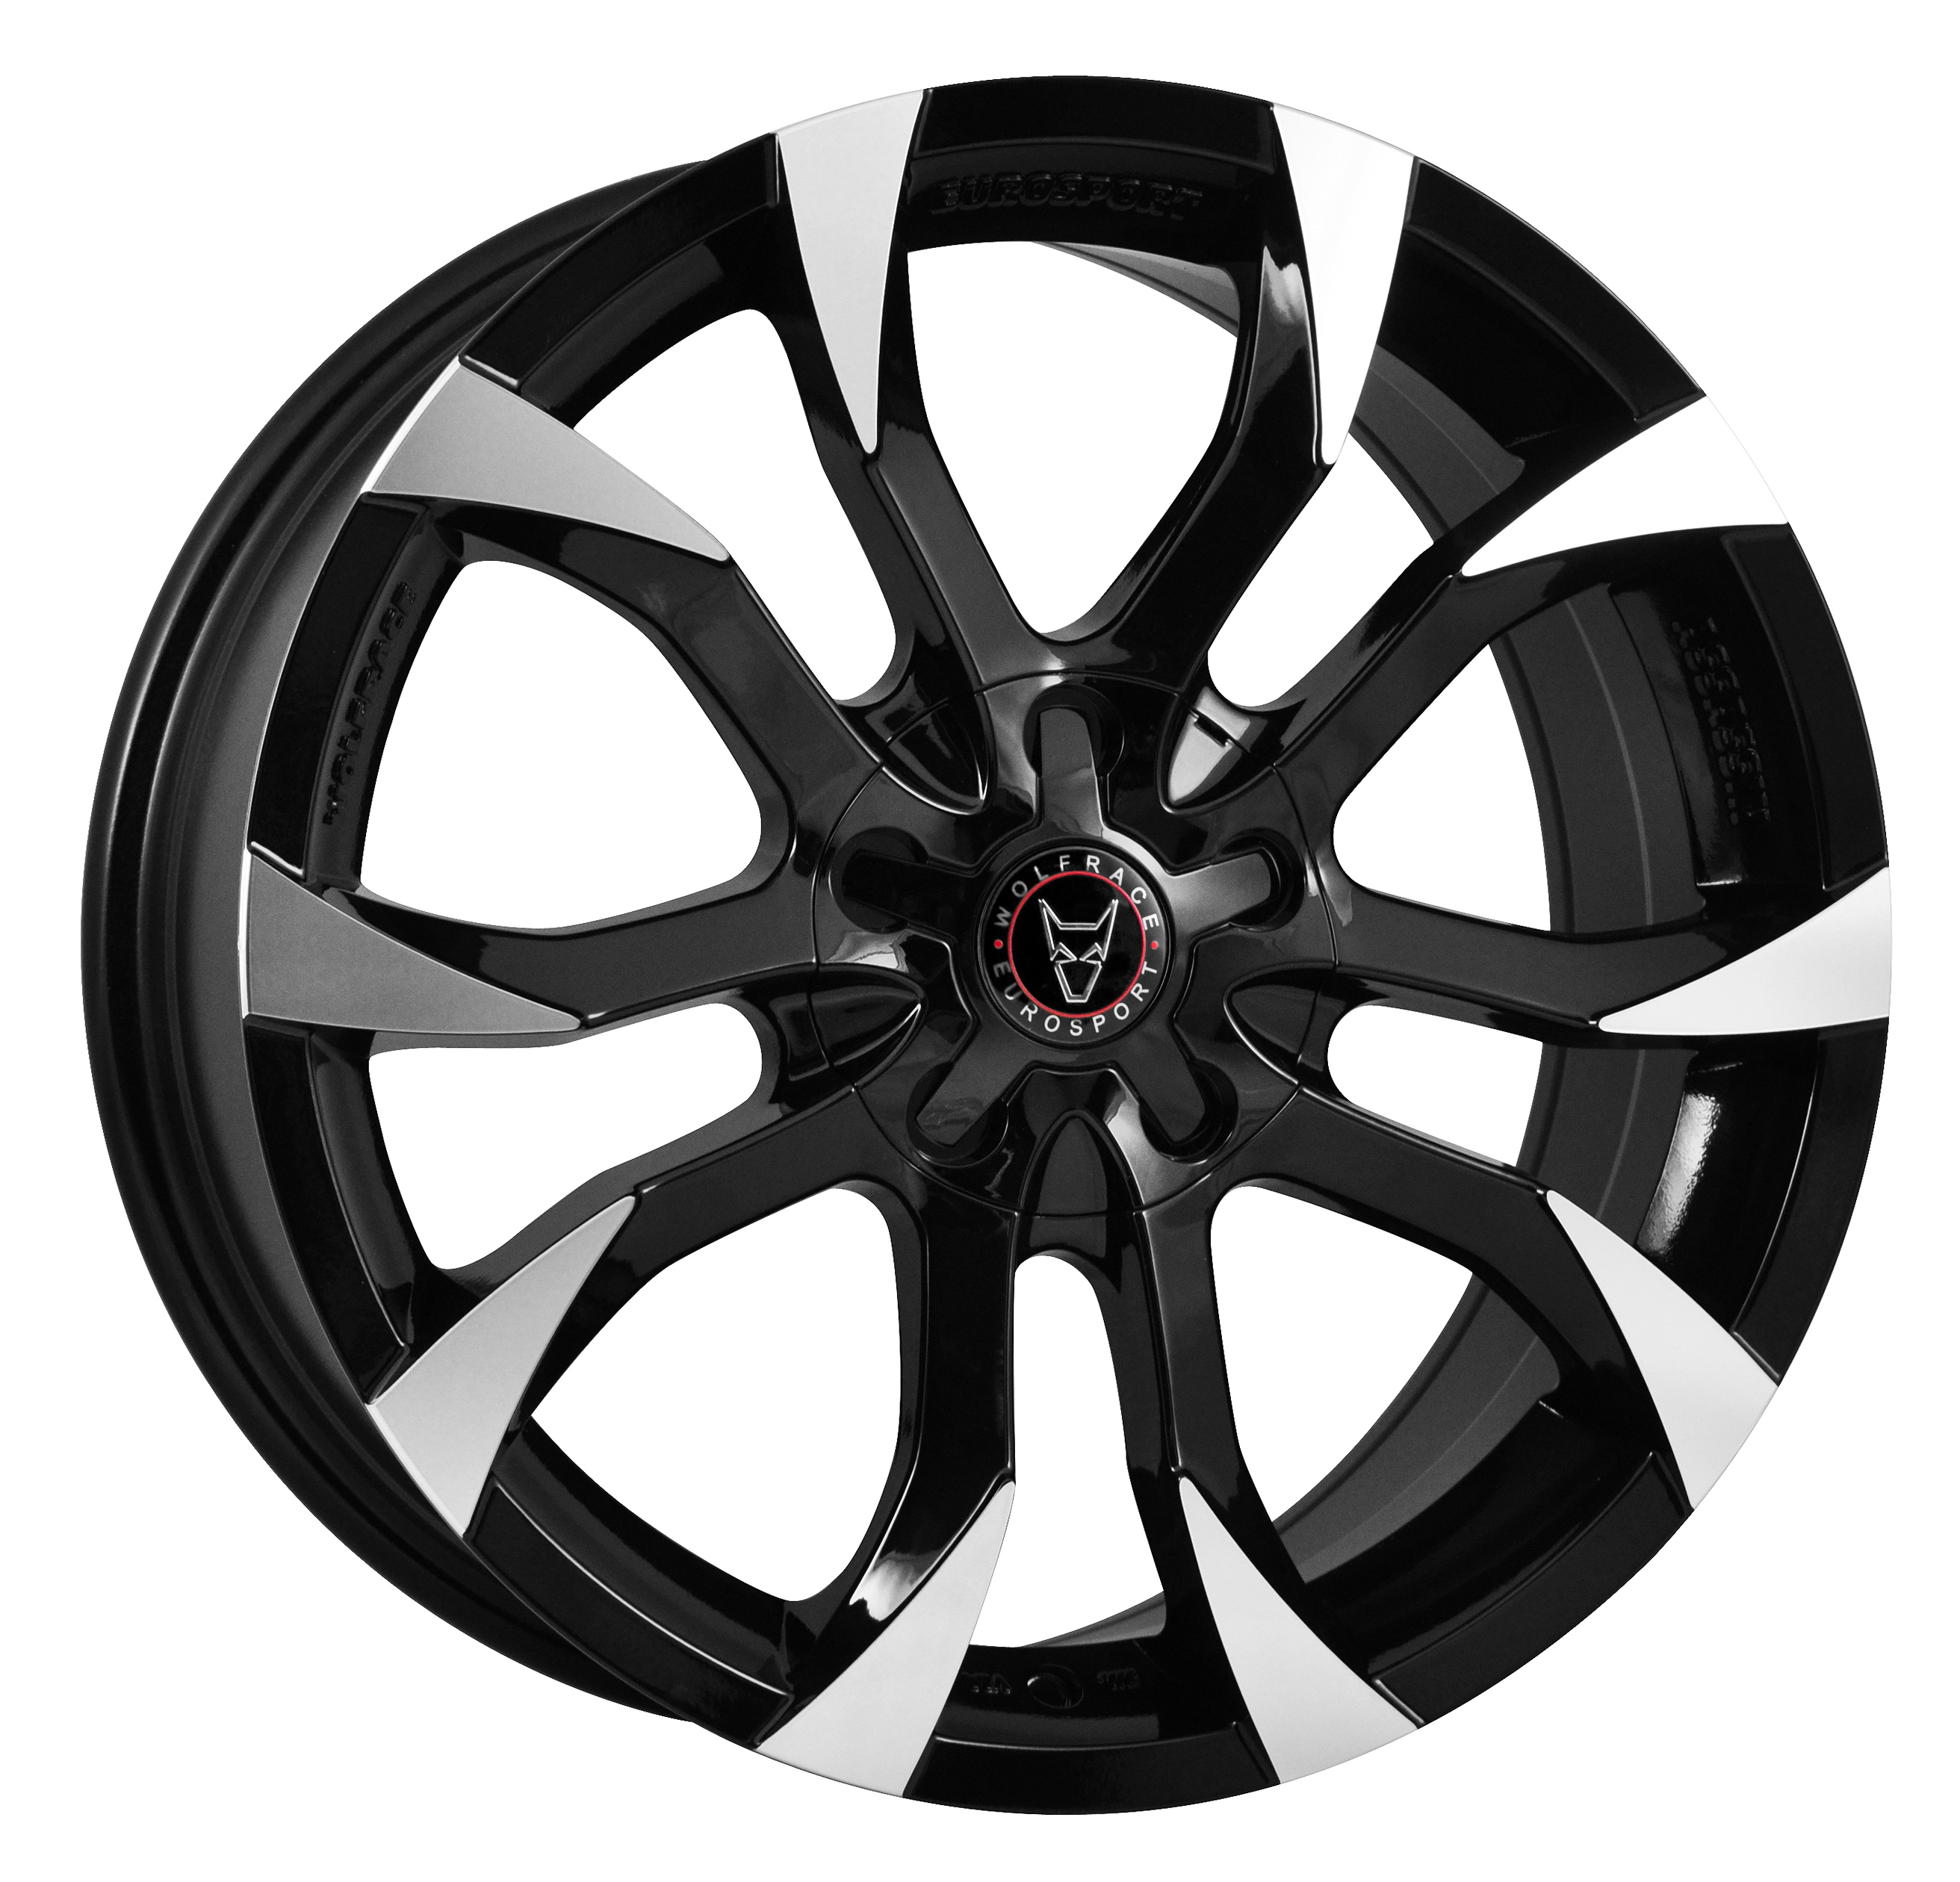 WOLFRACE EUROSPORT ASSASSIN 7x17 5x100/108 ET35 BLACK POLISHED